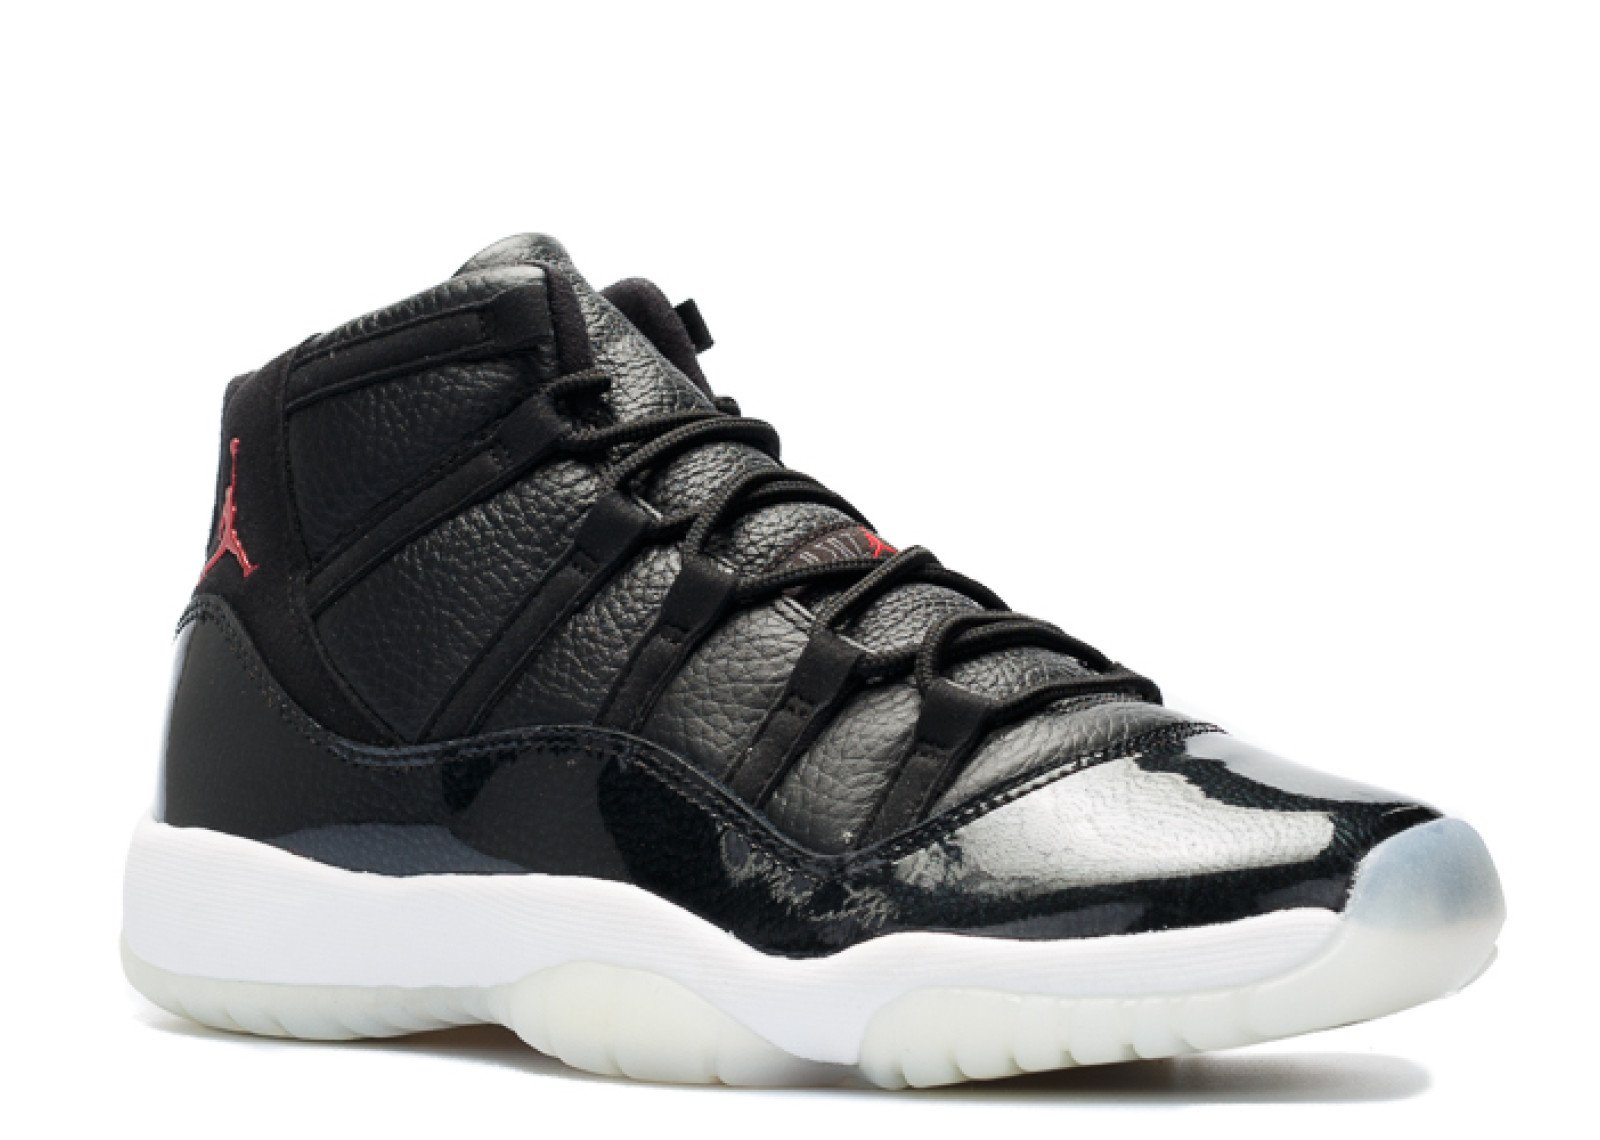 Air Jordan 11 Retro BG - 378038 002